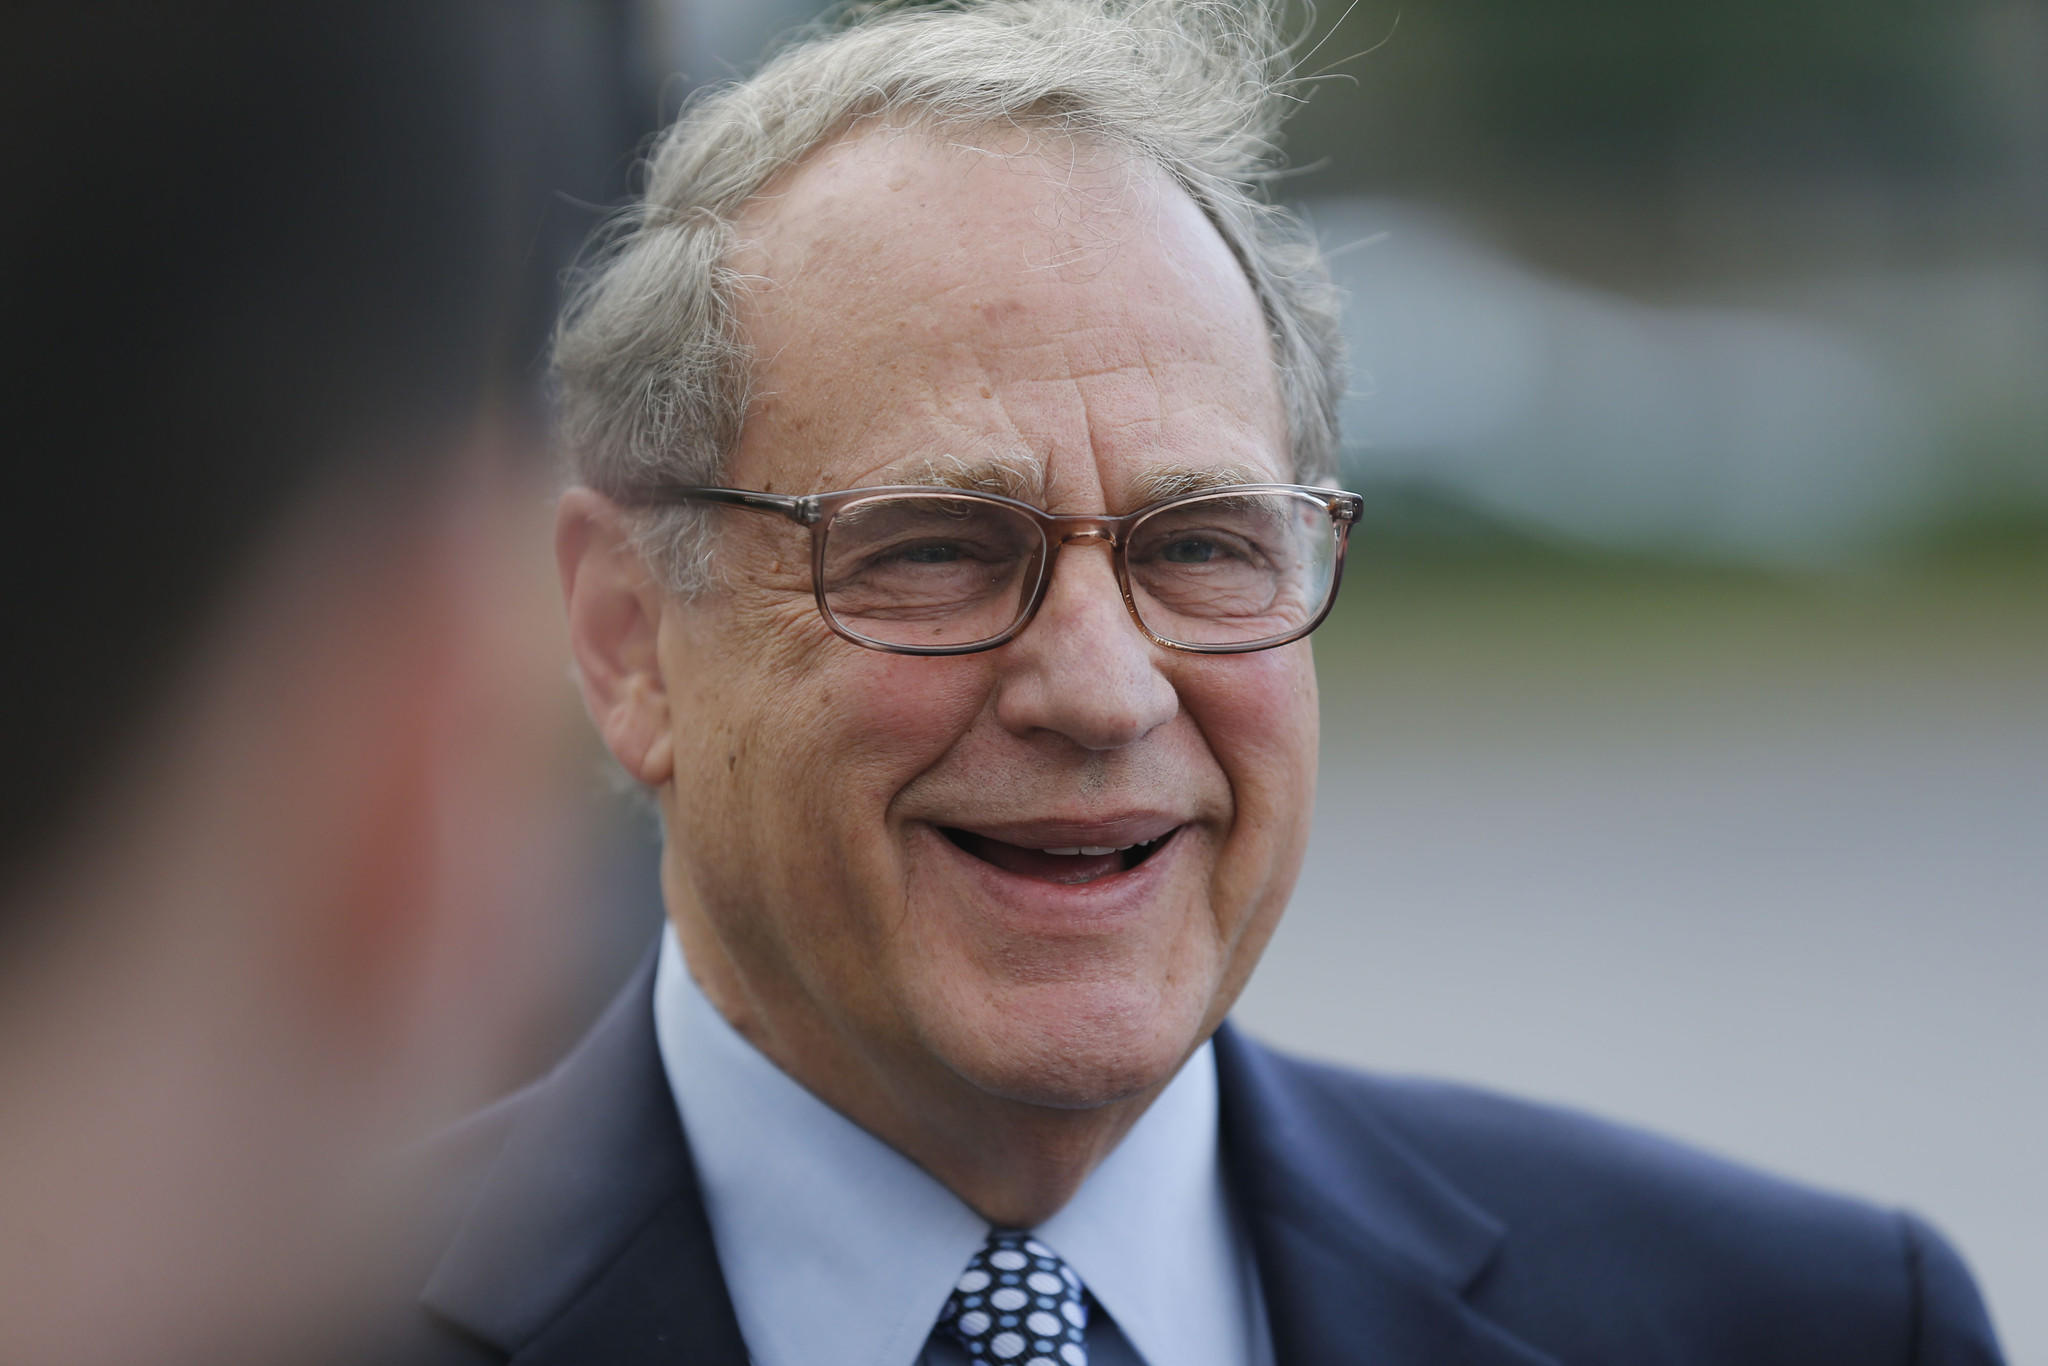 Silver Chalice, a 5-year-old Chicago-based digital sports media company led by Bulls and White Sox Chairman Jerry Reinsdorf, is an equity partner in 120 Sports, a 24/7 streaming sports network.